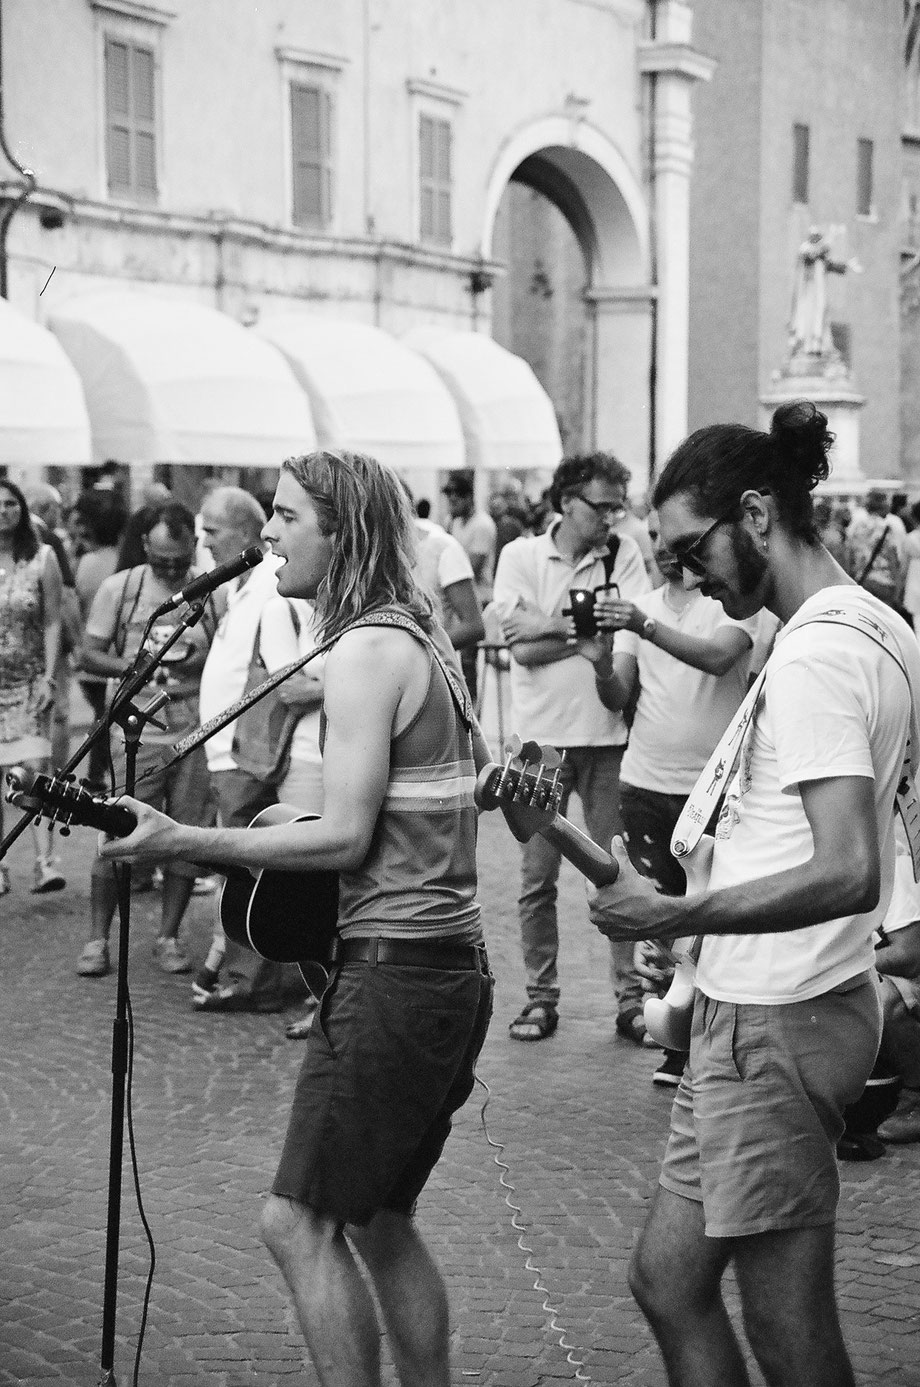 Ferrara, Buskers 2016 (with Ricoh Mirai Camera and Ilford 400 XP2 Film)